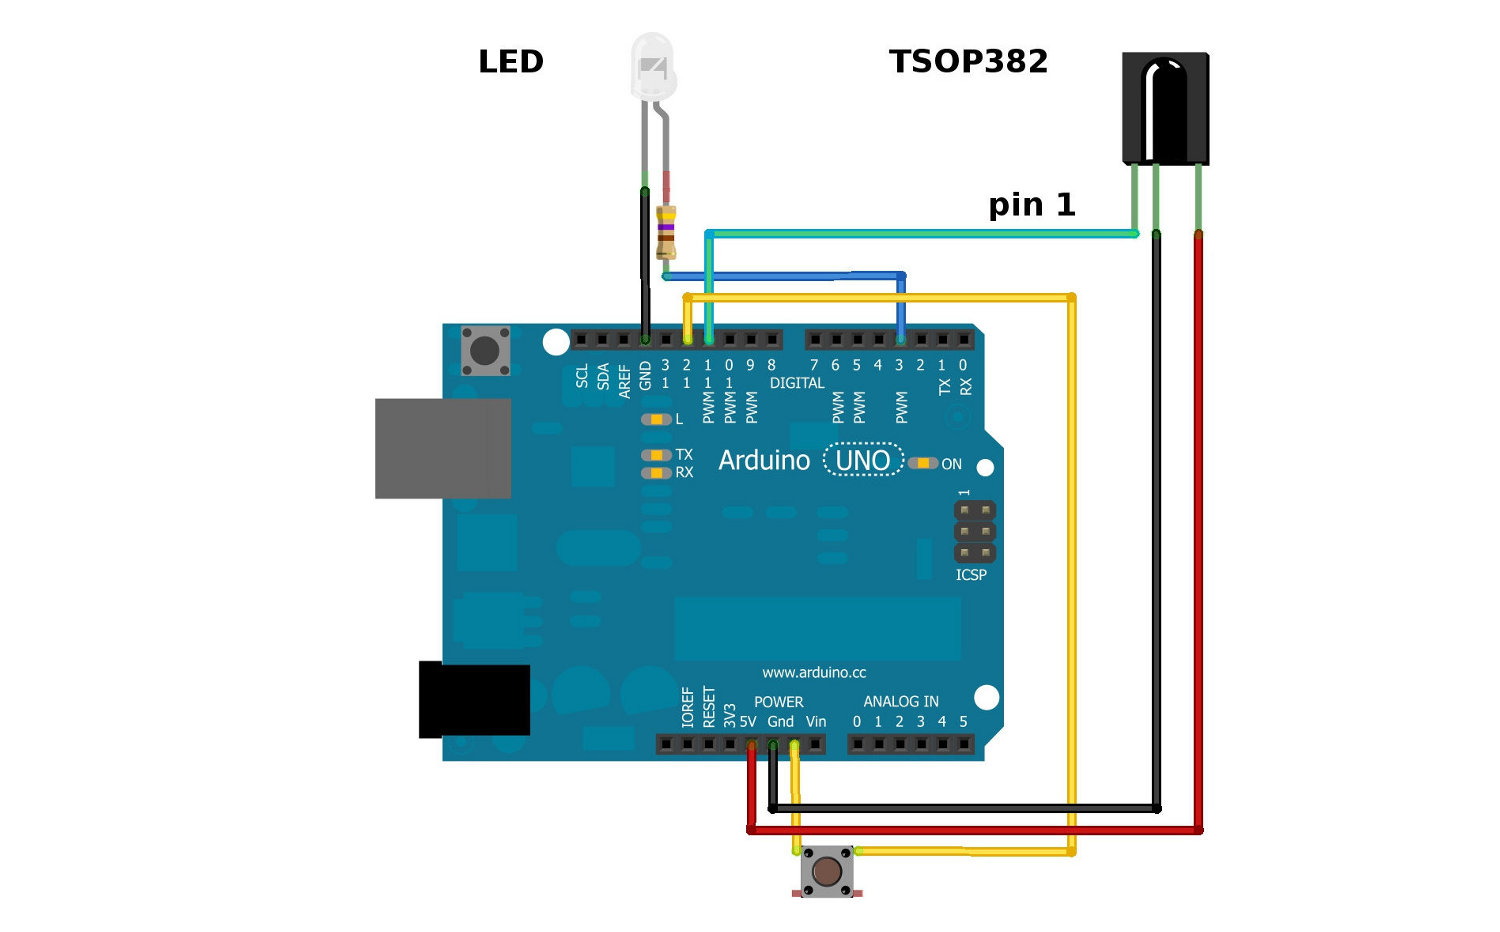 Ir Communication Wiring Diagram Further Motion Sensor Light Additionally Circuit Here Is The Complete Setup For Connecting To An Arduino Hardware